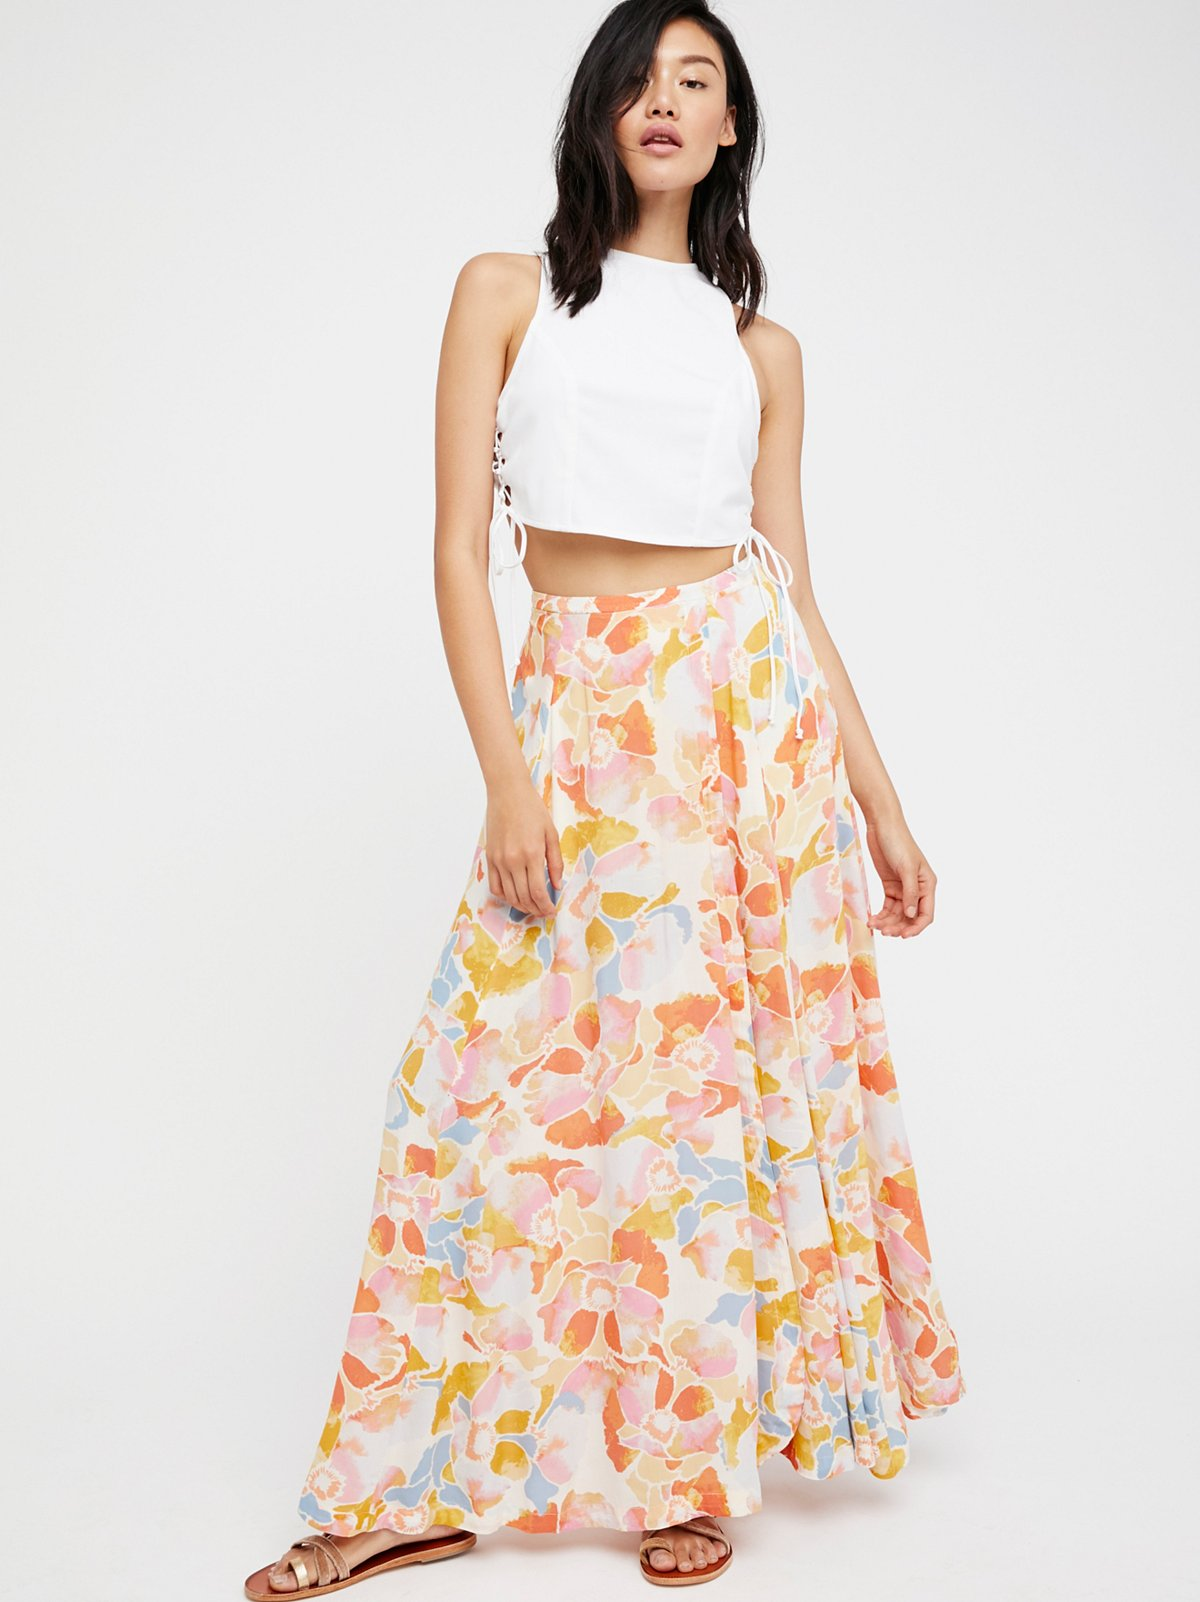 Hot Tropics Maxi Skirt at Free People Clothing Boutique